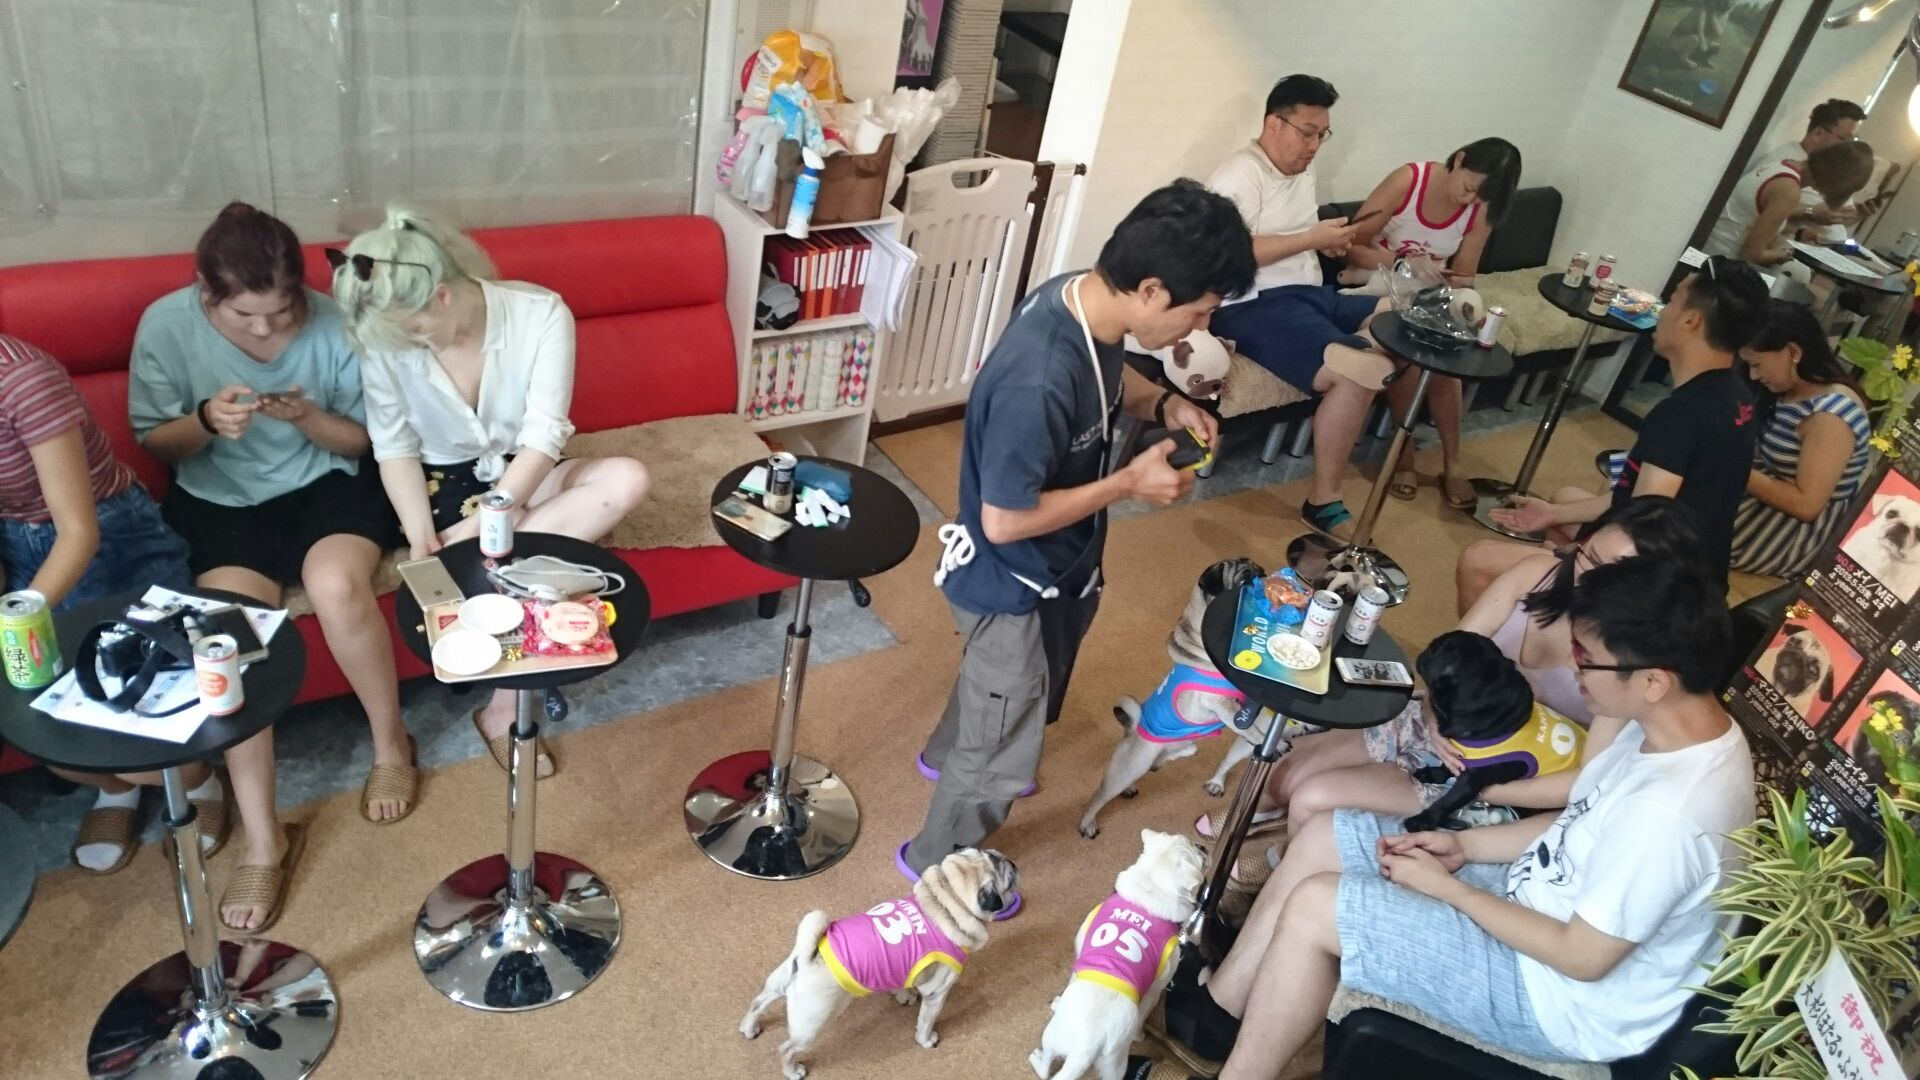 And the winner is Pug Cafe Living Room, Japan 8